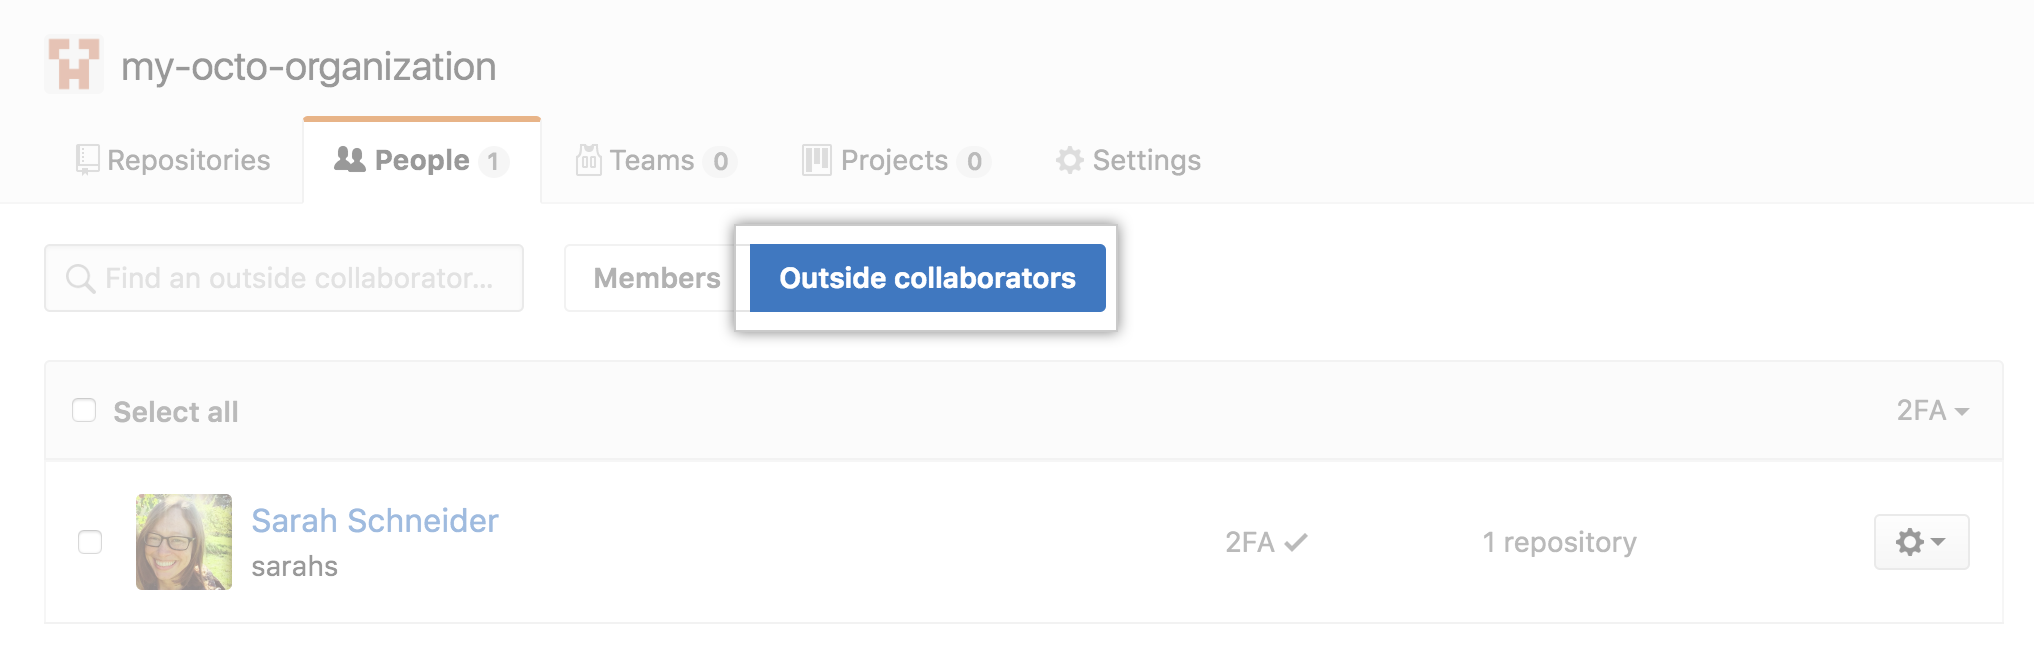 Button to select outside collaborators for an organization